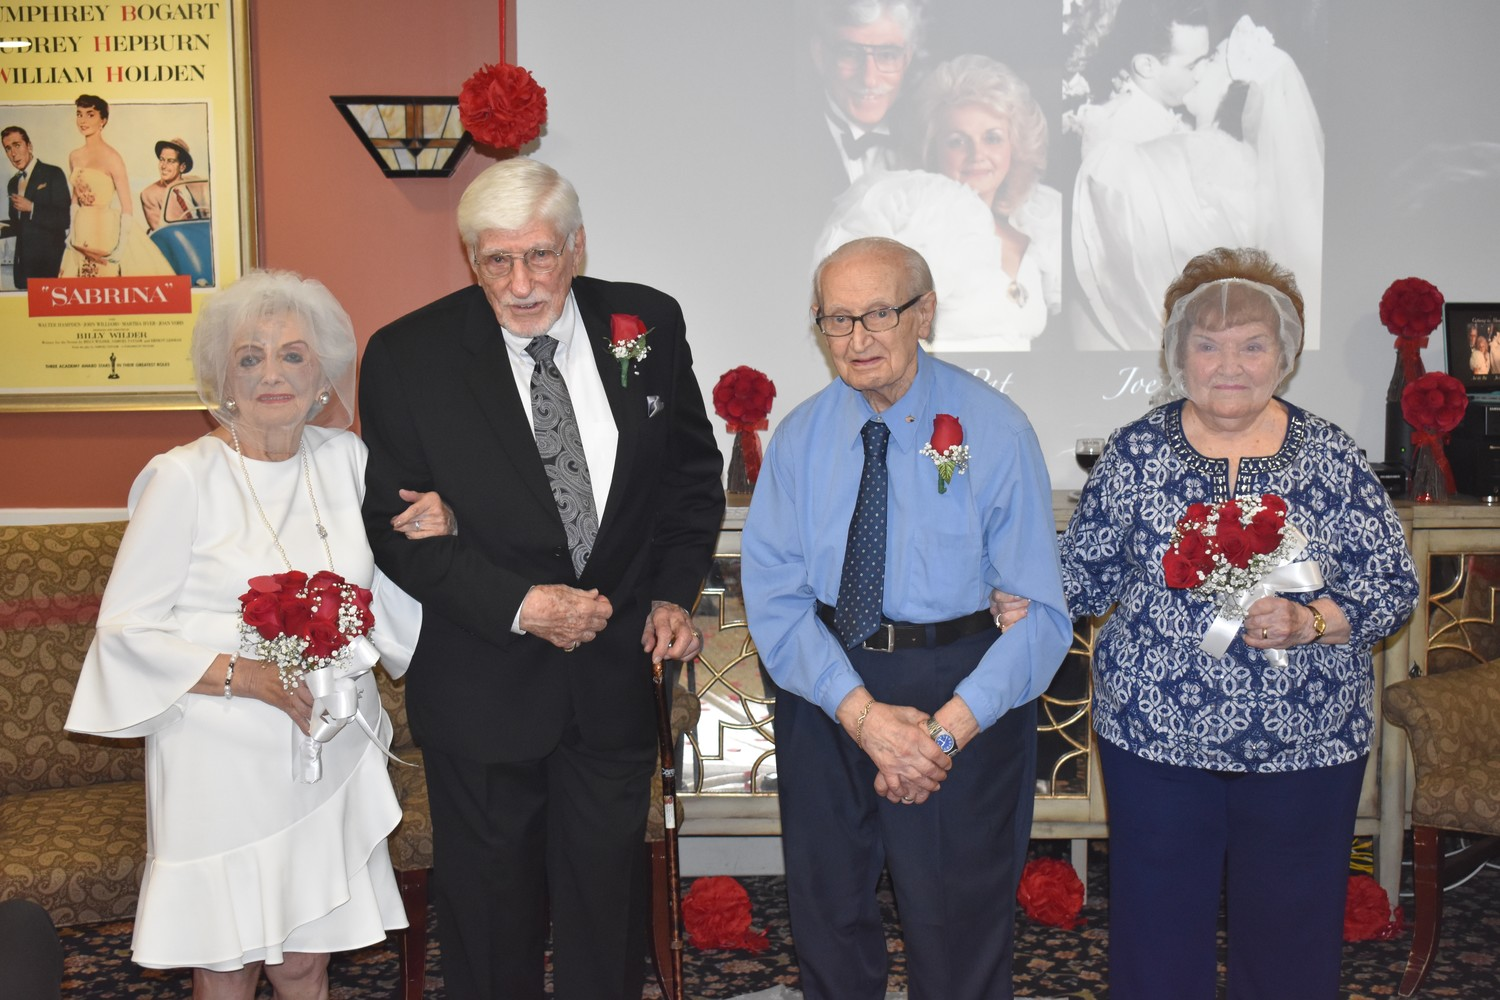 Patricia Saftler, left, and her husband, Arthur, joined Joe Saitta and his wife, Florence, at Maple Pointe Assisted Living Center on Sept. 13 to recreate their weddings.